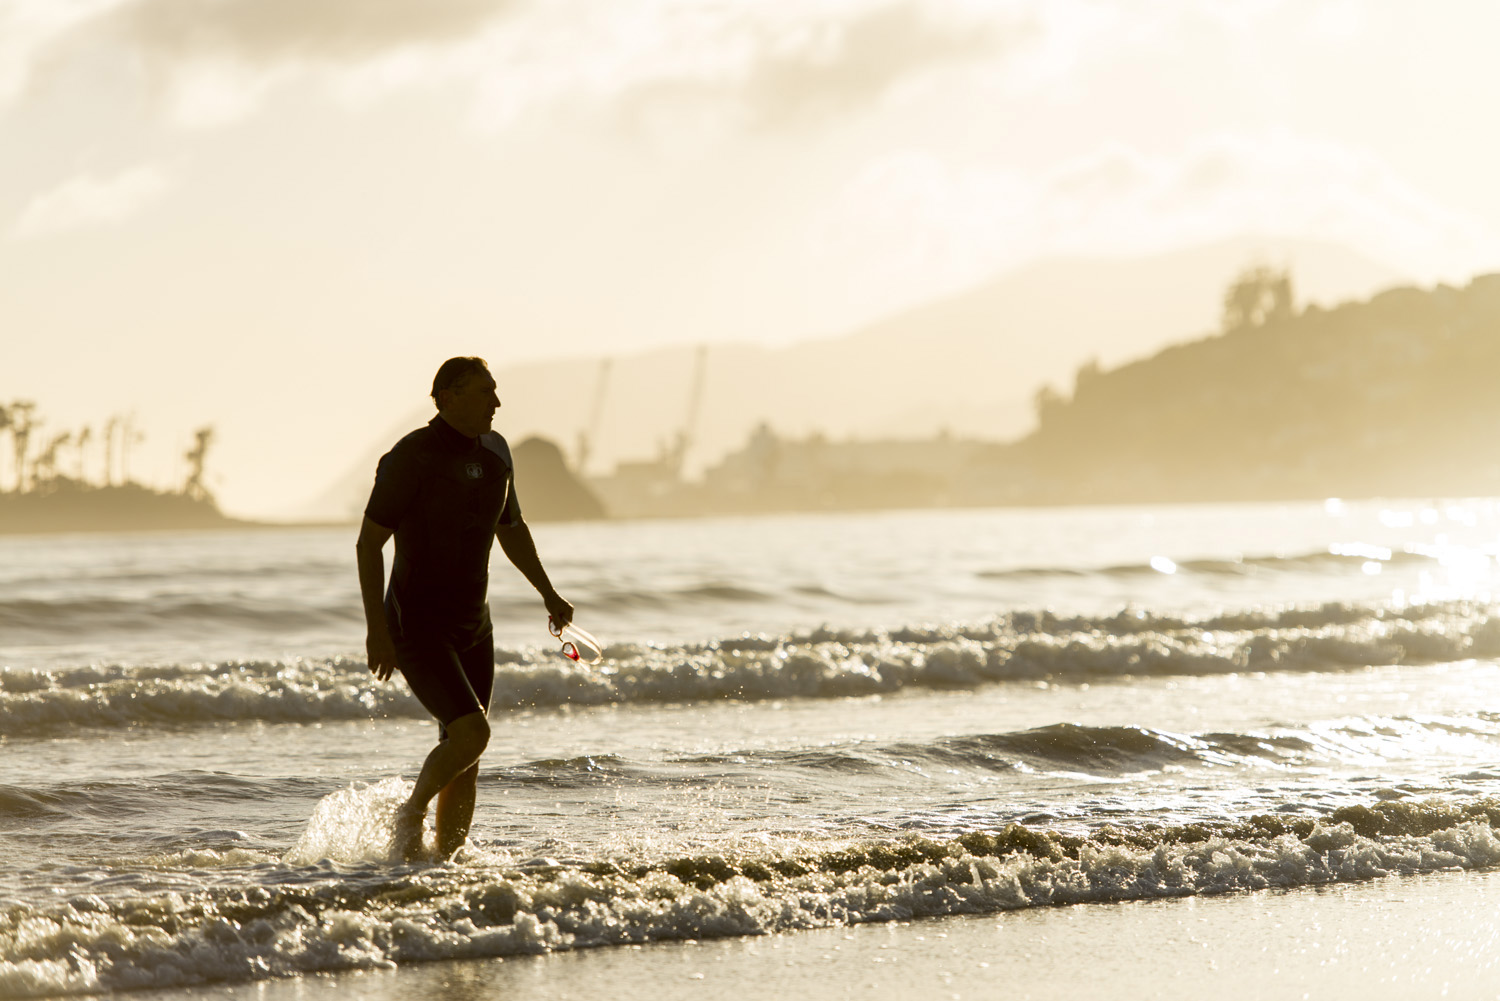 image of AARONTAIT COPYRIGHTED 2014 280 DOCUMENTARY PHOTOGRAPHER NEW ZEALAND EDITORIAL REPORTAGE CUSTOMER ENVIRONMENTAL HUMAN RESOURCES INTERVIEW REAL NATURAL LIGHT OCEAN SWIMMER LIFE HEALTH FITNESS BEACH